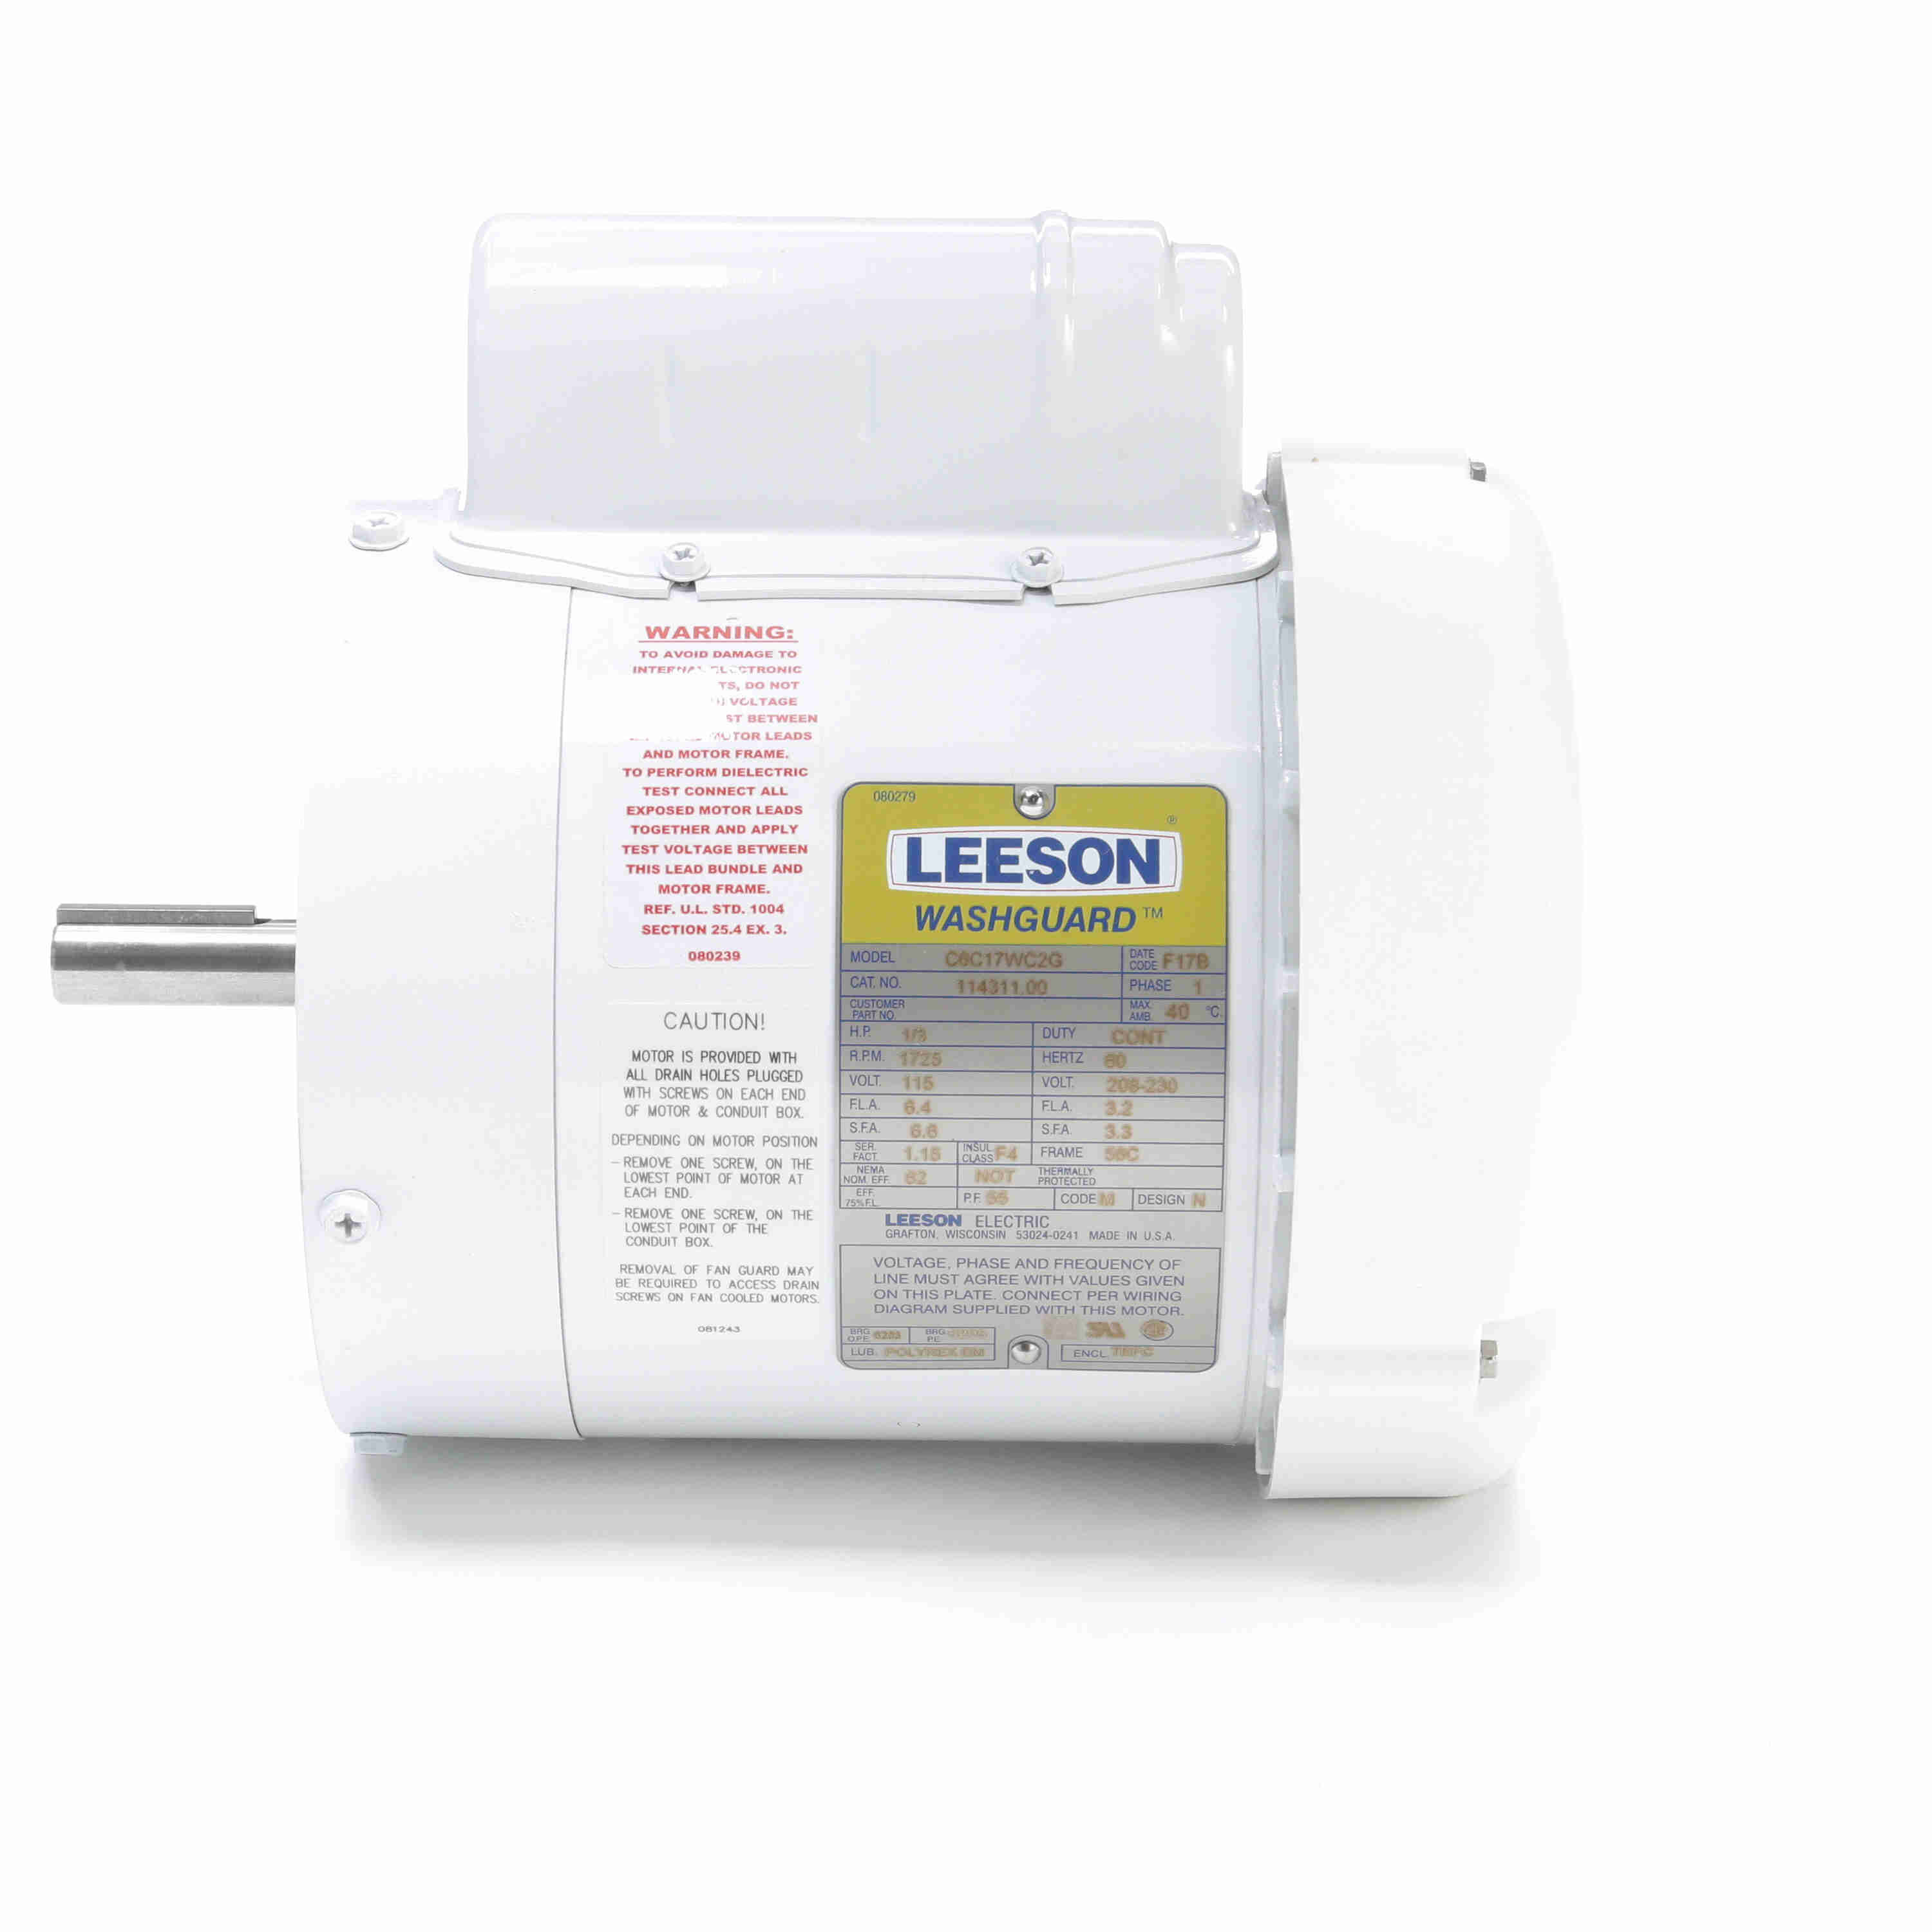 114311.00 Leeson Washguard Motor, 1/3HP, 1800RPM on house thermostat wiring diagrams, capacitor start motor diagrams, single phase capacitor motor diagrams, 3 phase motor winding diagrams, general motors parts diagrams, single phase 115v motor diagrams, 2 hp marathon electric motors wiring diagrams, electric trailer brake wiring diagrams, scosche wiring harness diagrams, 115 230 motor voltage change,